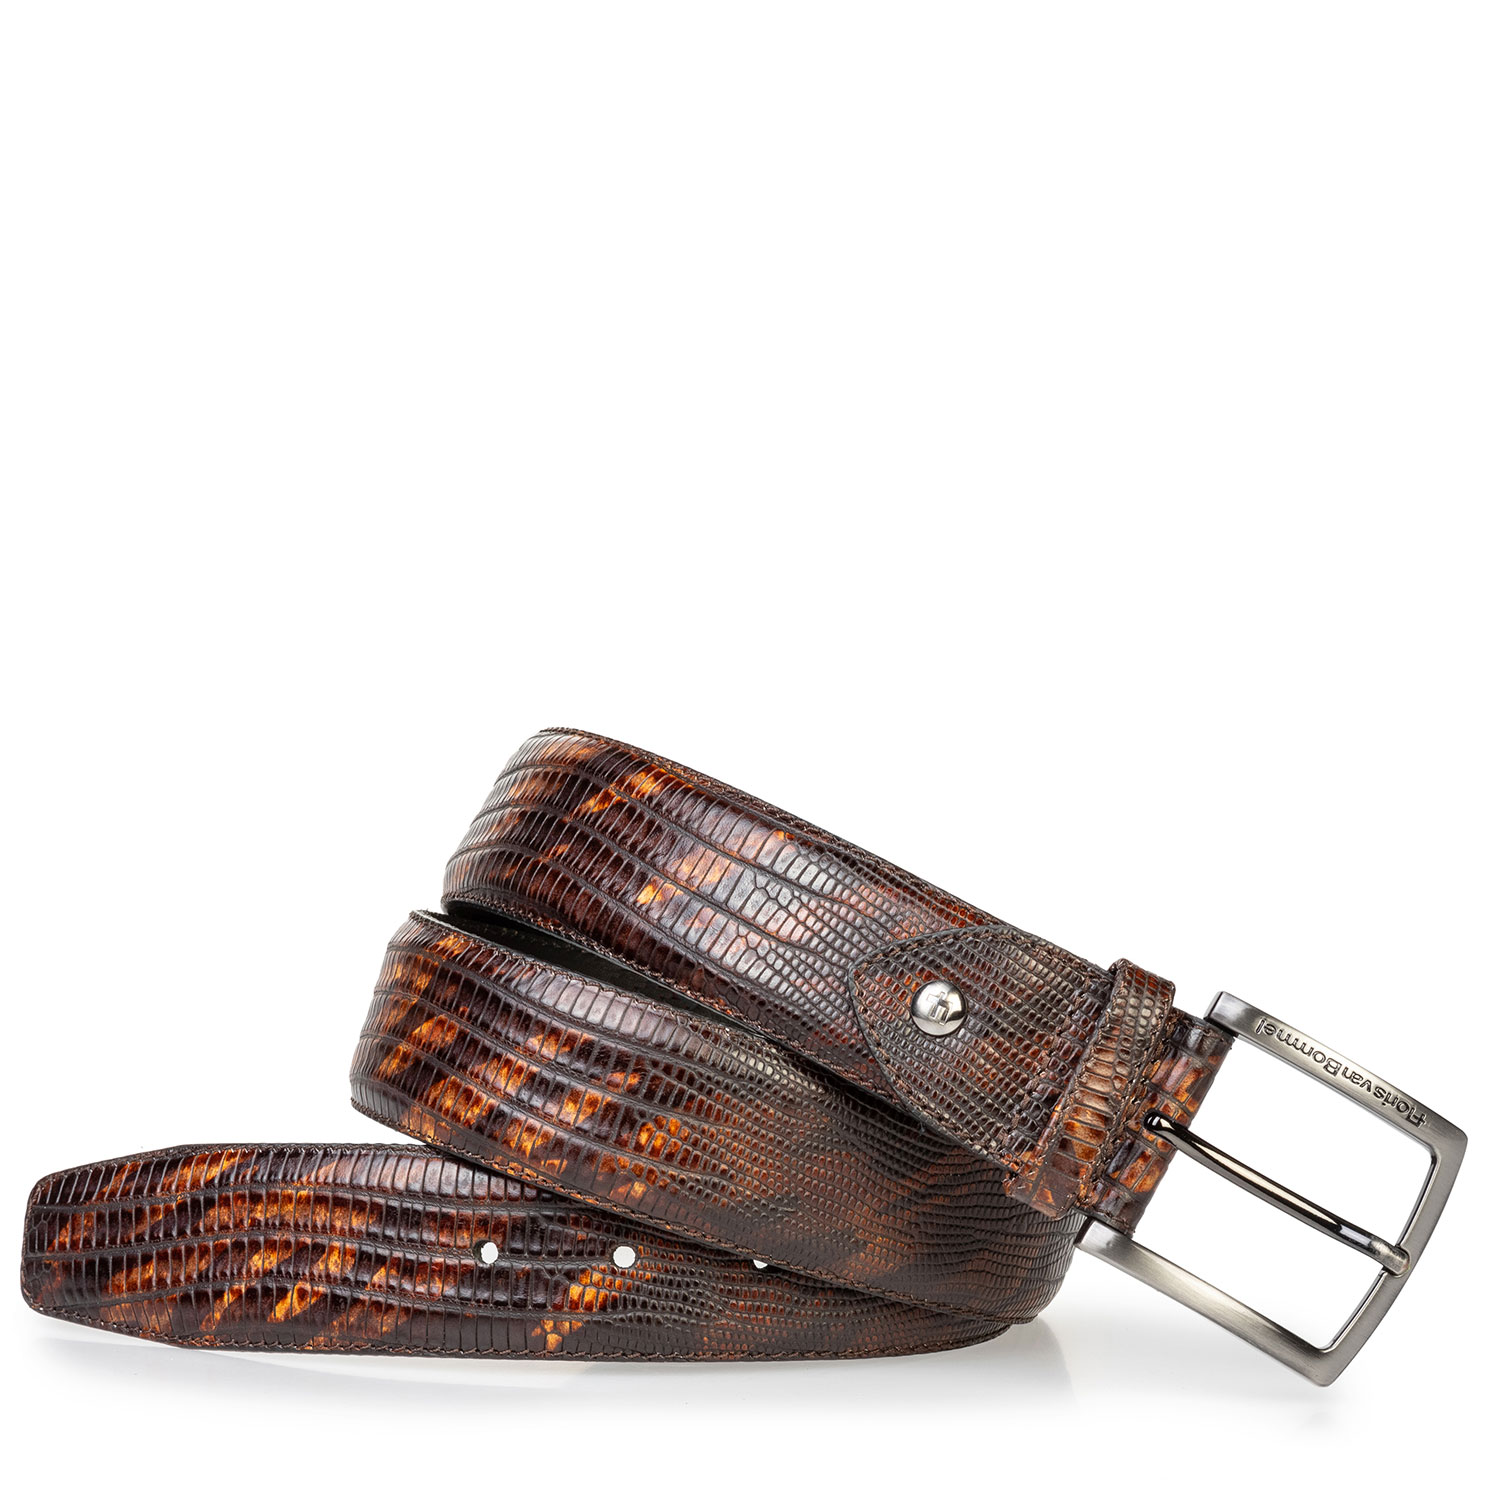 75202/74 - Leather belt lizard print dark cognac